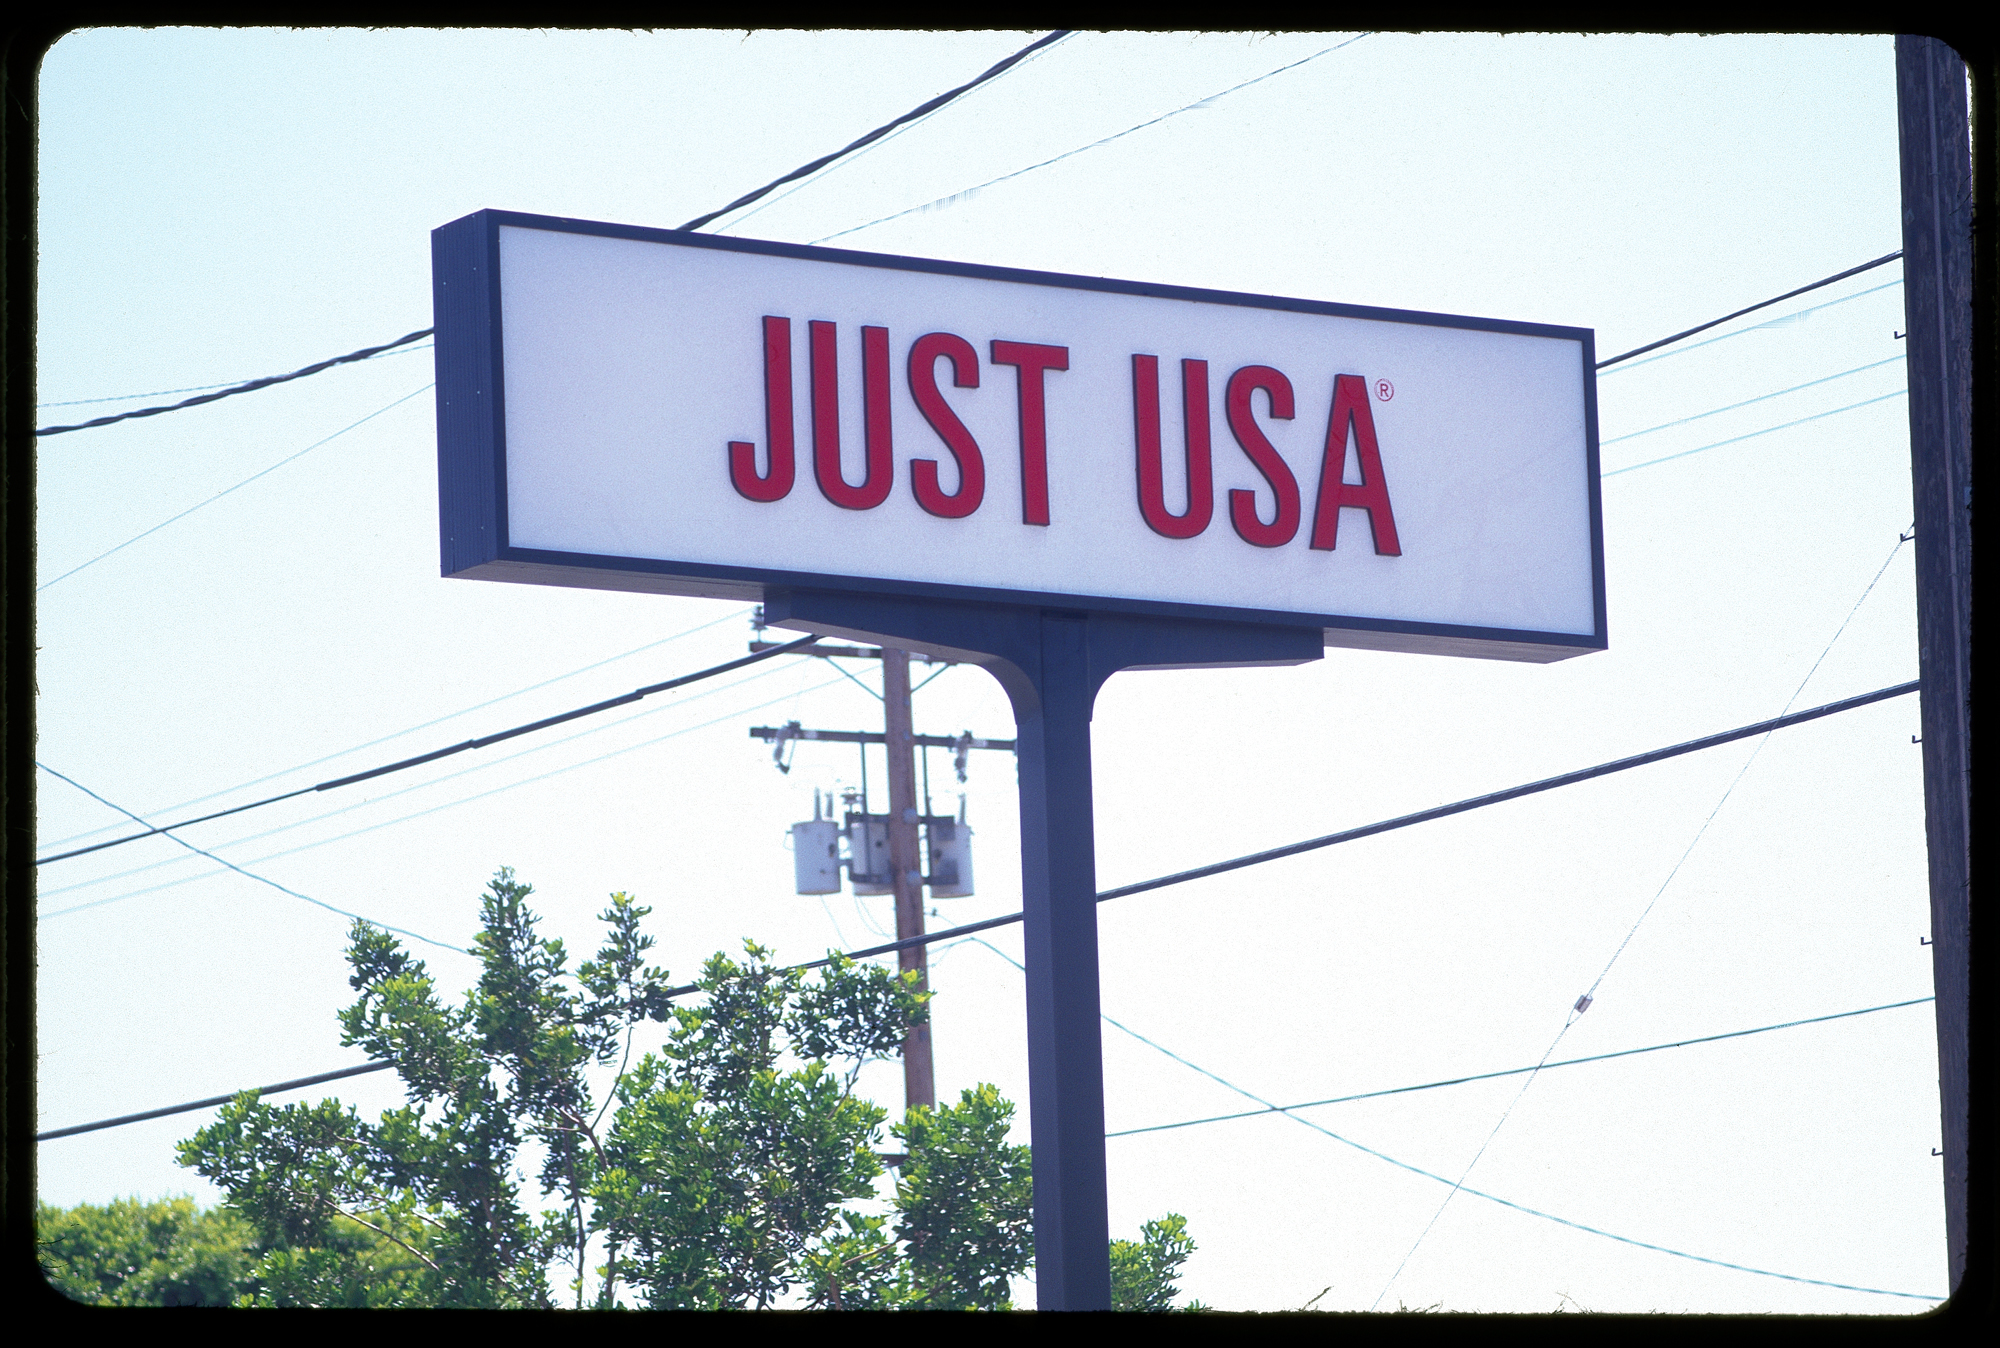 - Marisa J. Futernick's work looks at the promise of the American Dream, intertwining the personal with the historical and fact with fiction, often through the act of searching for something or someplace lost or inaccessible. Issues of class, progress, and real estate are also central to her practice. She uses a variety of media including photography, writing, installation, video, drawing, silkscreen, and painting; with the combination of text and image a regular feature throughout her work.Futernick is consumed by an ongoing obsession with the past, specifically the post-war period of her parents' generation, and how it has affected her own lifetime and the present. She is American, but lived in London for over fifteen years, during which time her work became more and more about America—the longer she was away from her country, the more deeply she began to understand and engage with it.Image: Just USA, 2014Archival fine art print from 35mm slide, 15 x 21.5 in